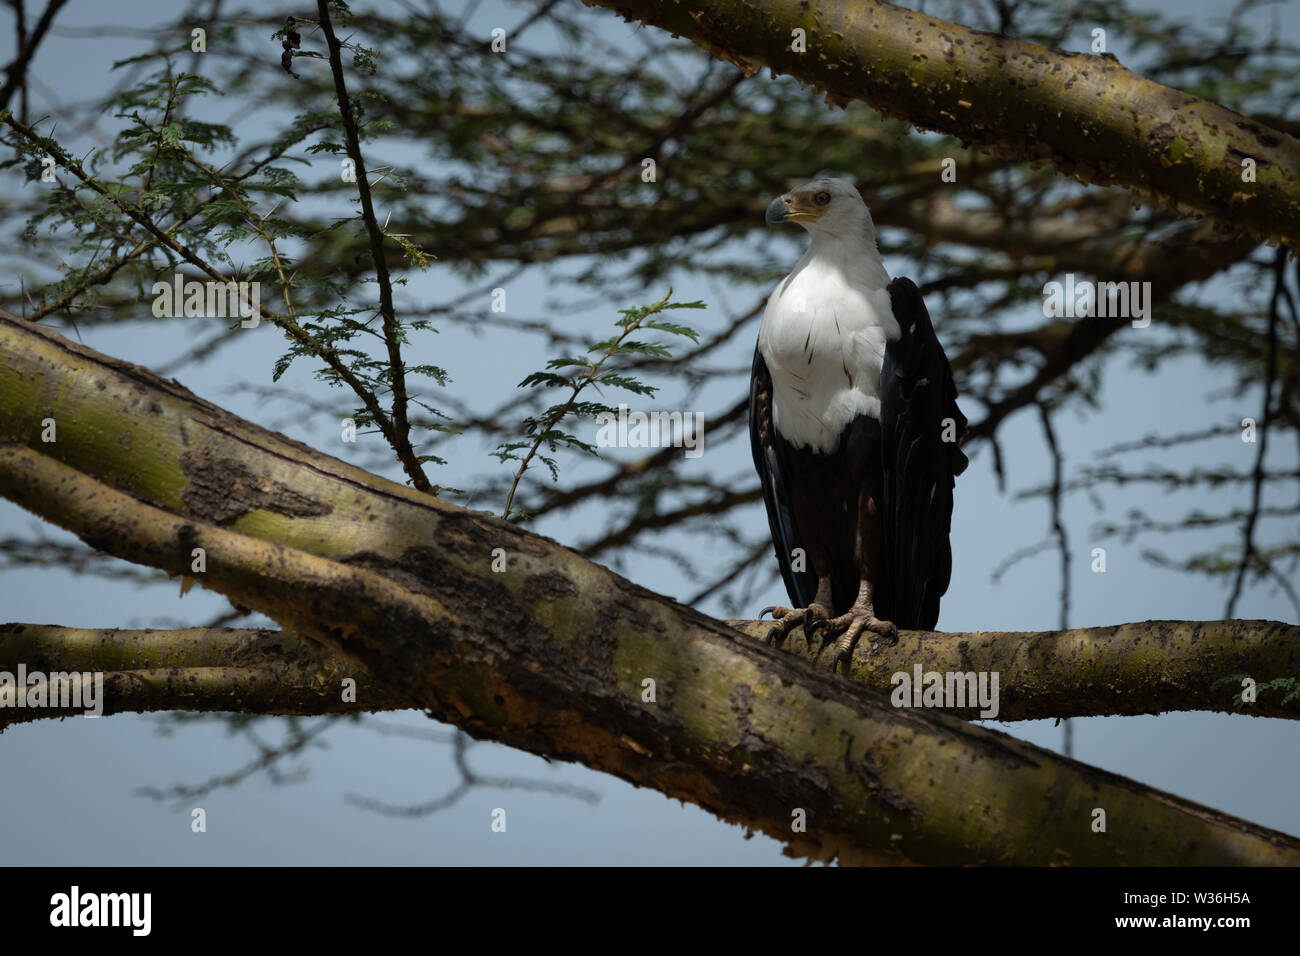 African fish eagle perched on tree branch - Stock Image